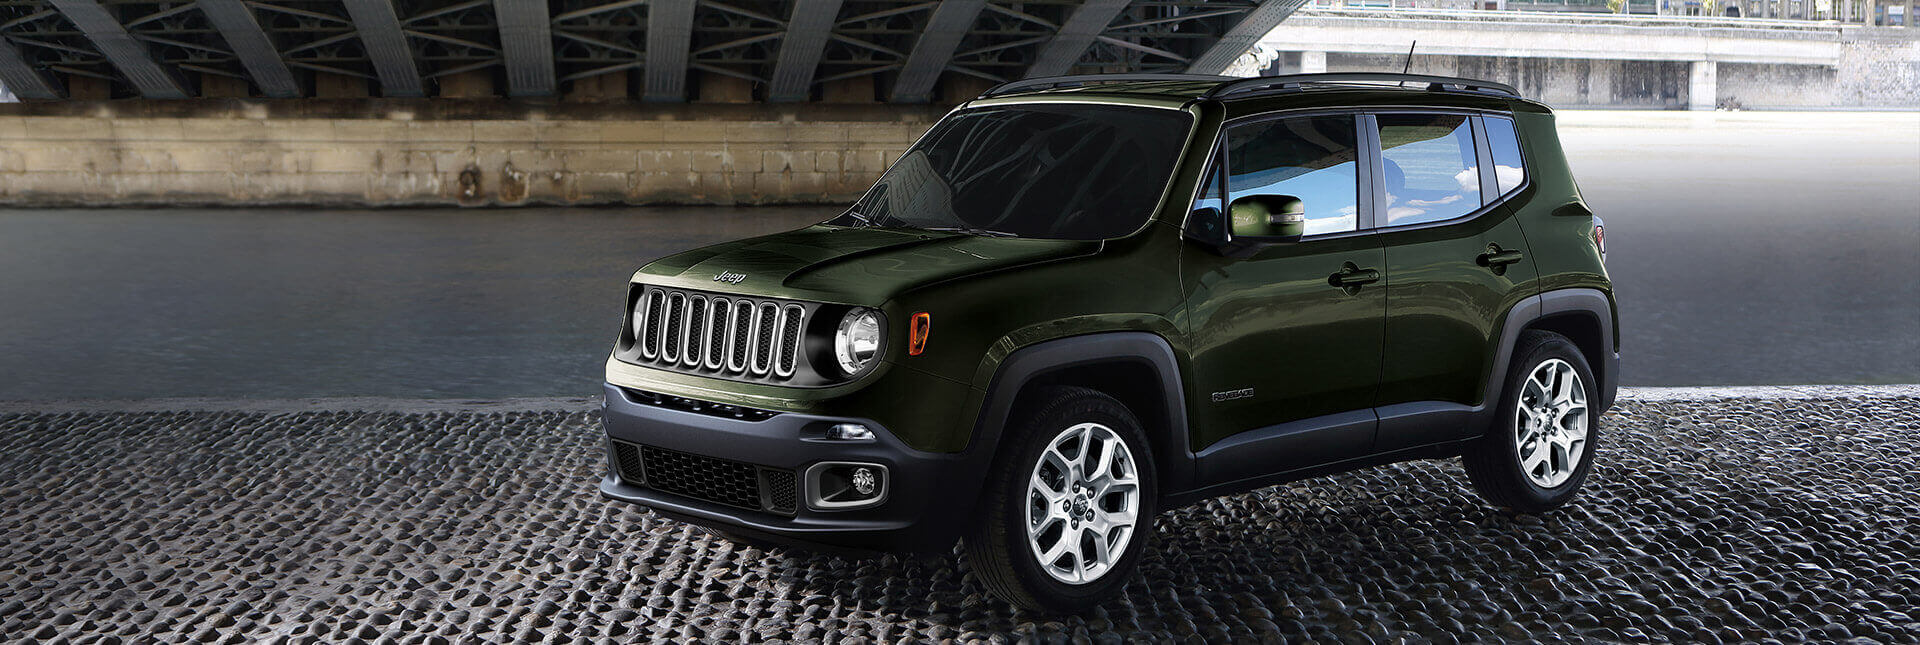 Banner Jeep - Renegade